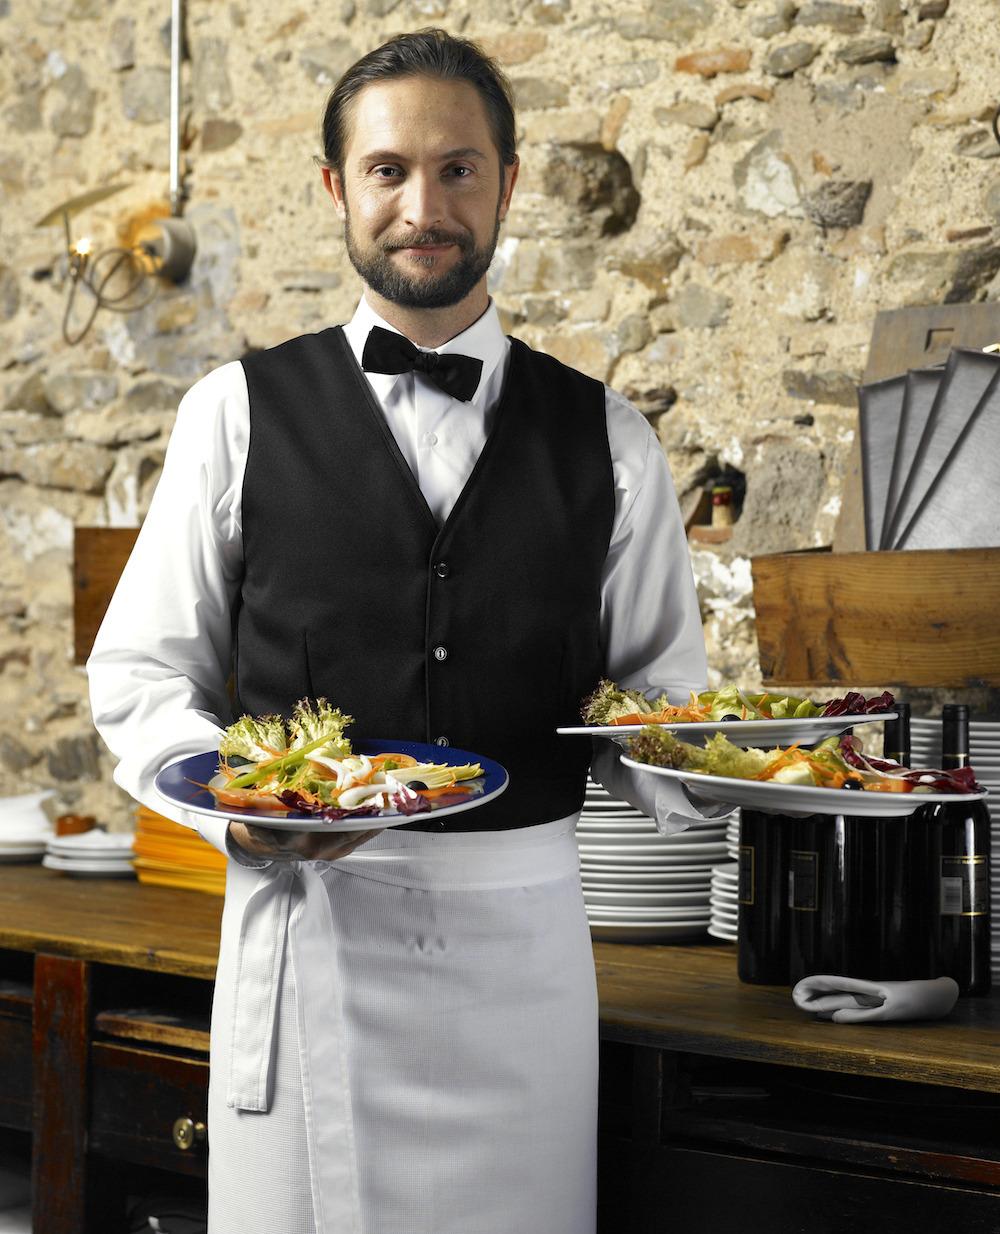 3 Things Your Restaurant's Uniforms Are Telling Customers